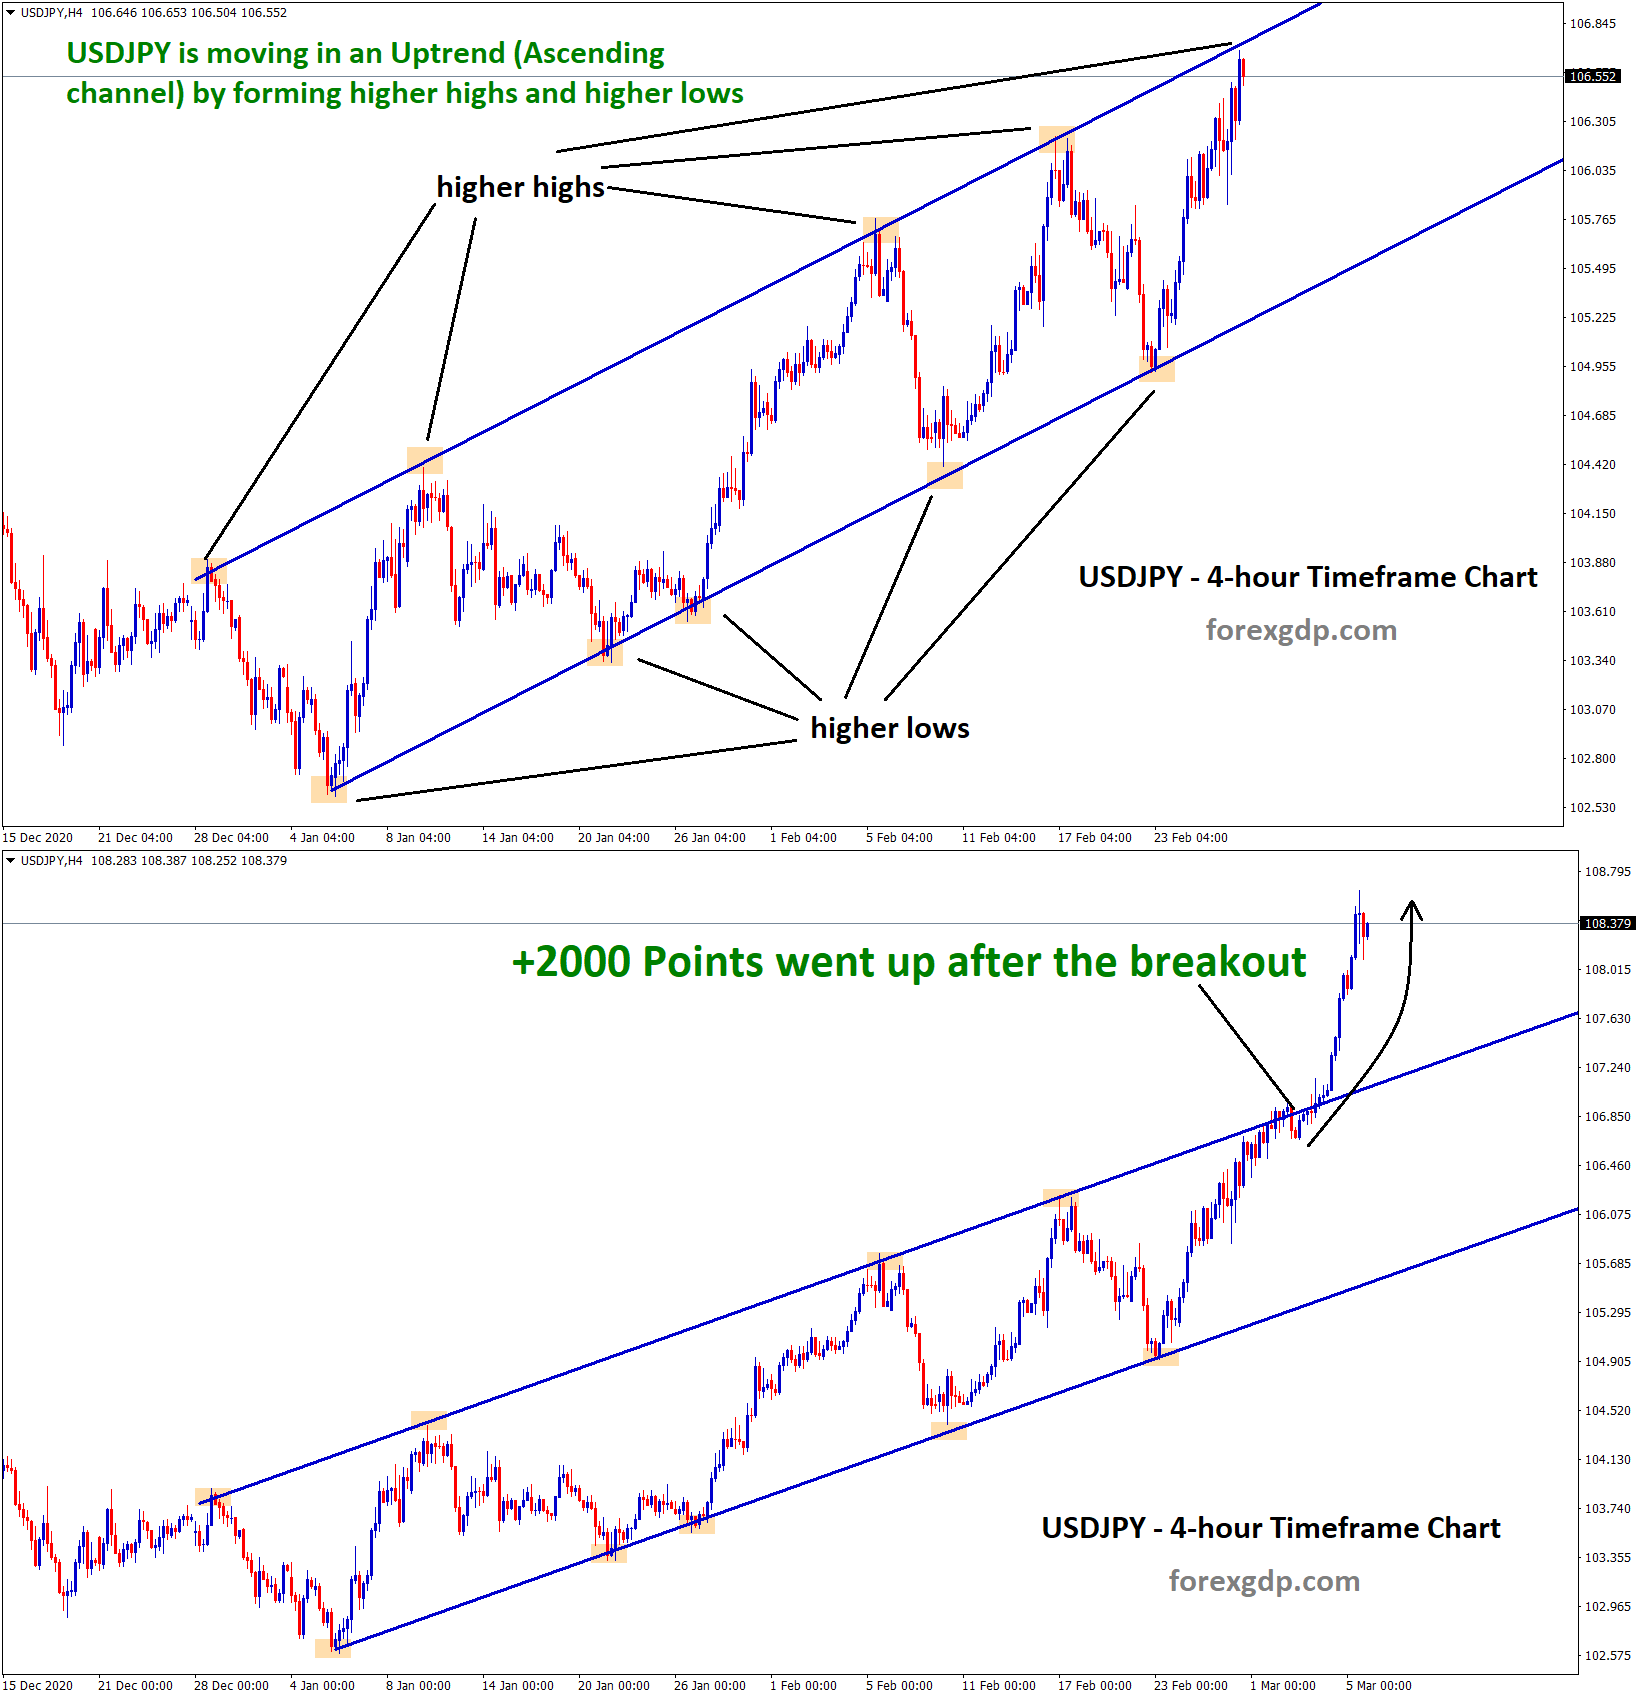 usdjpy went up 2000 points after the breakout of the channel